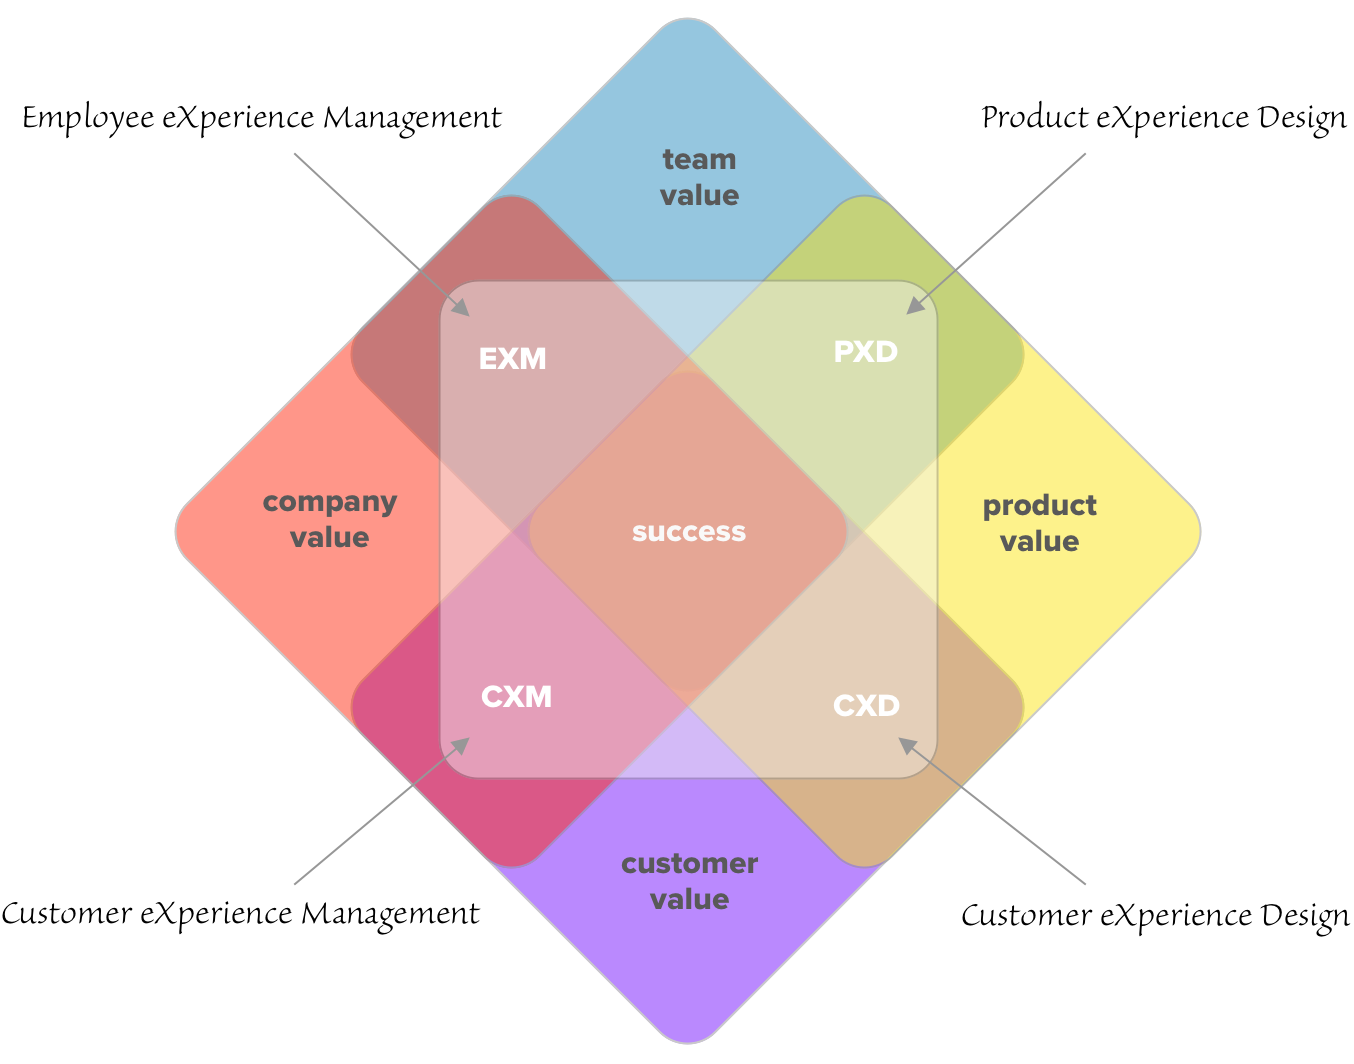 graphic the overlapping relationships of experience management and experience design